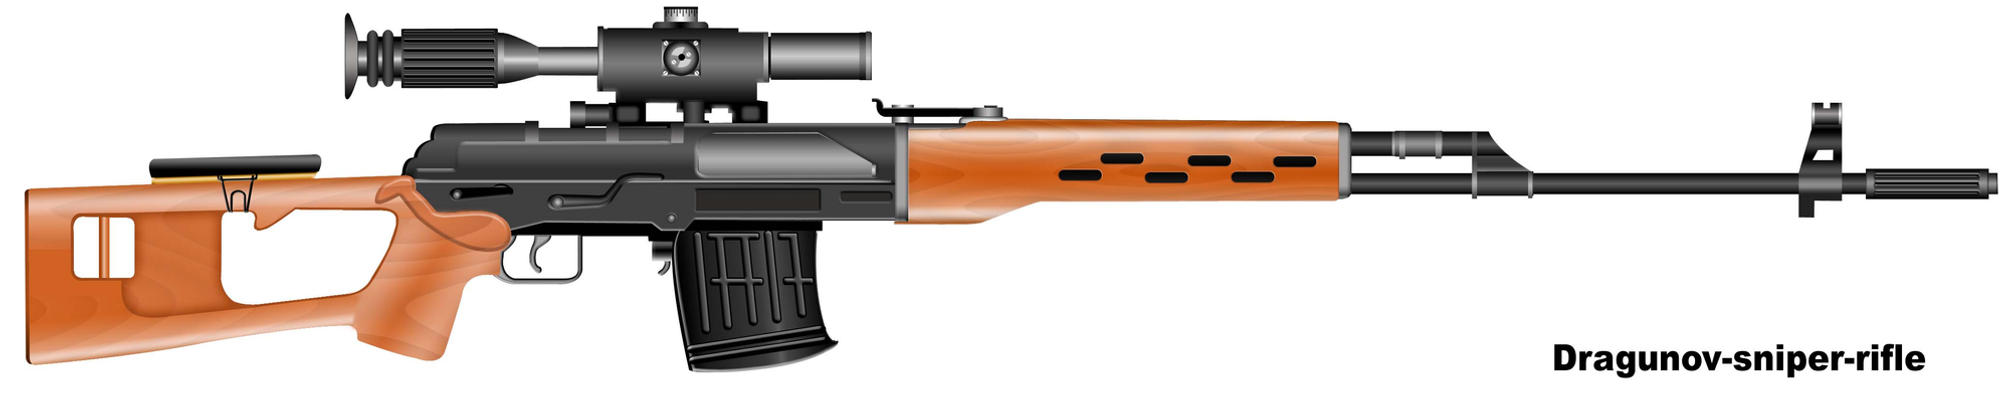 dragunov-sniper-rifle by AyanHasan